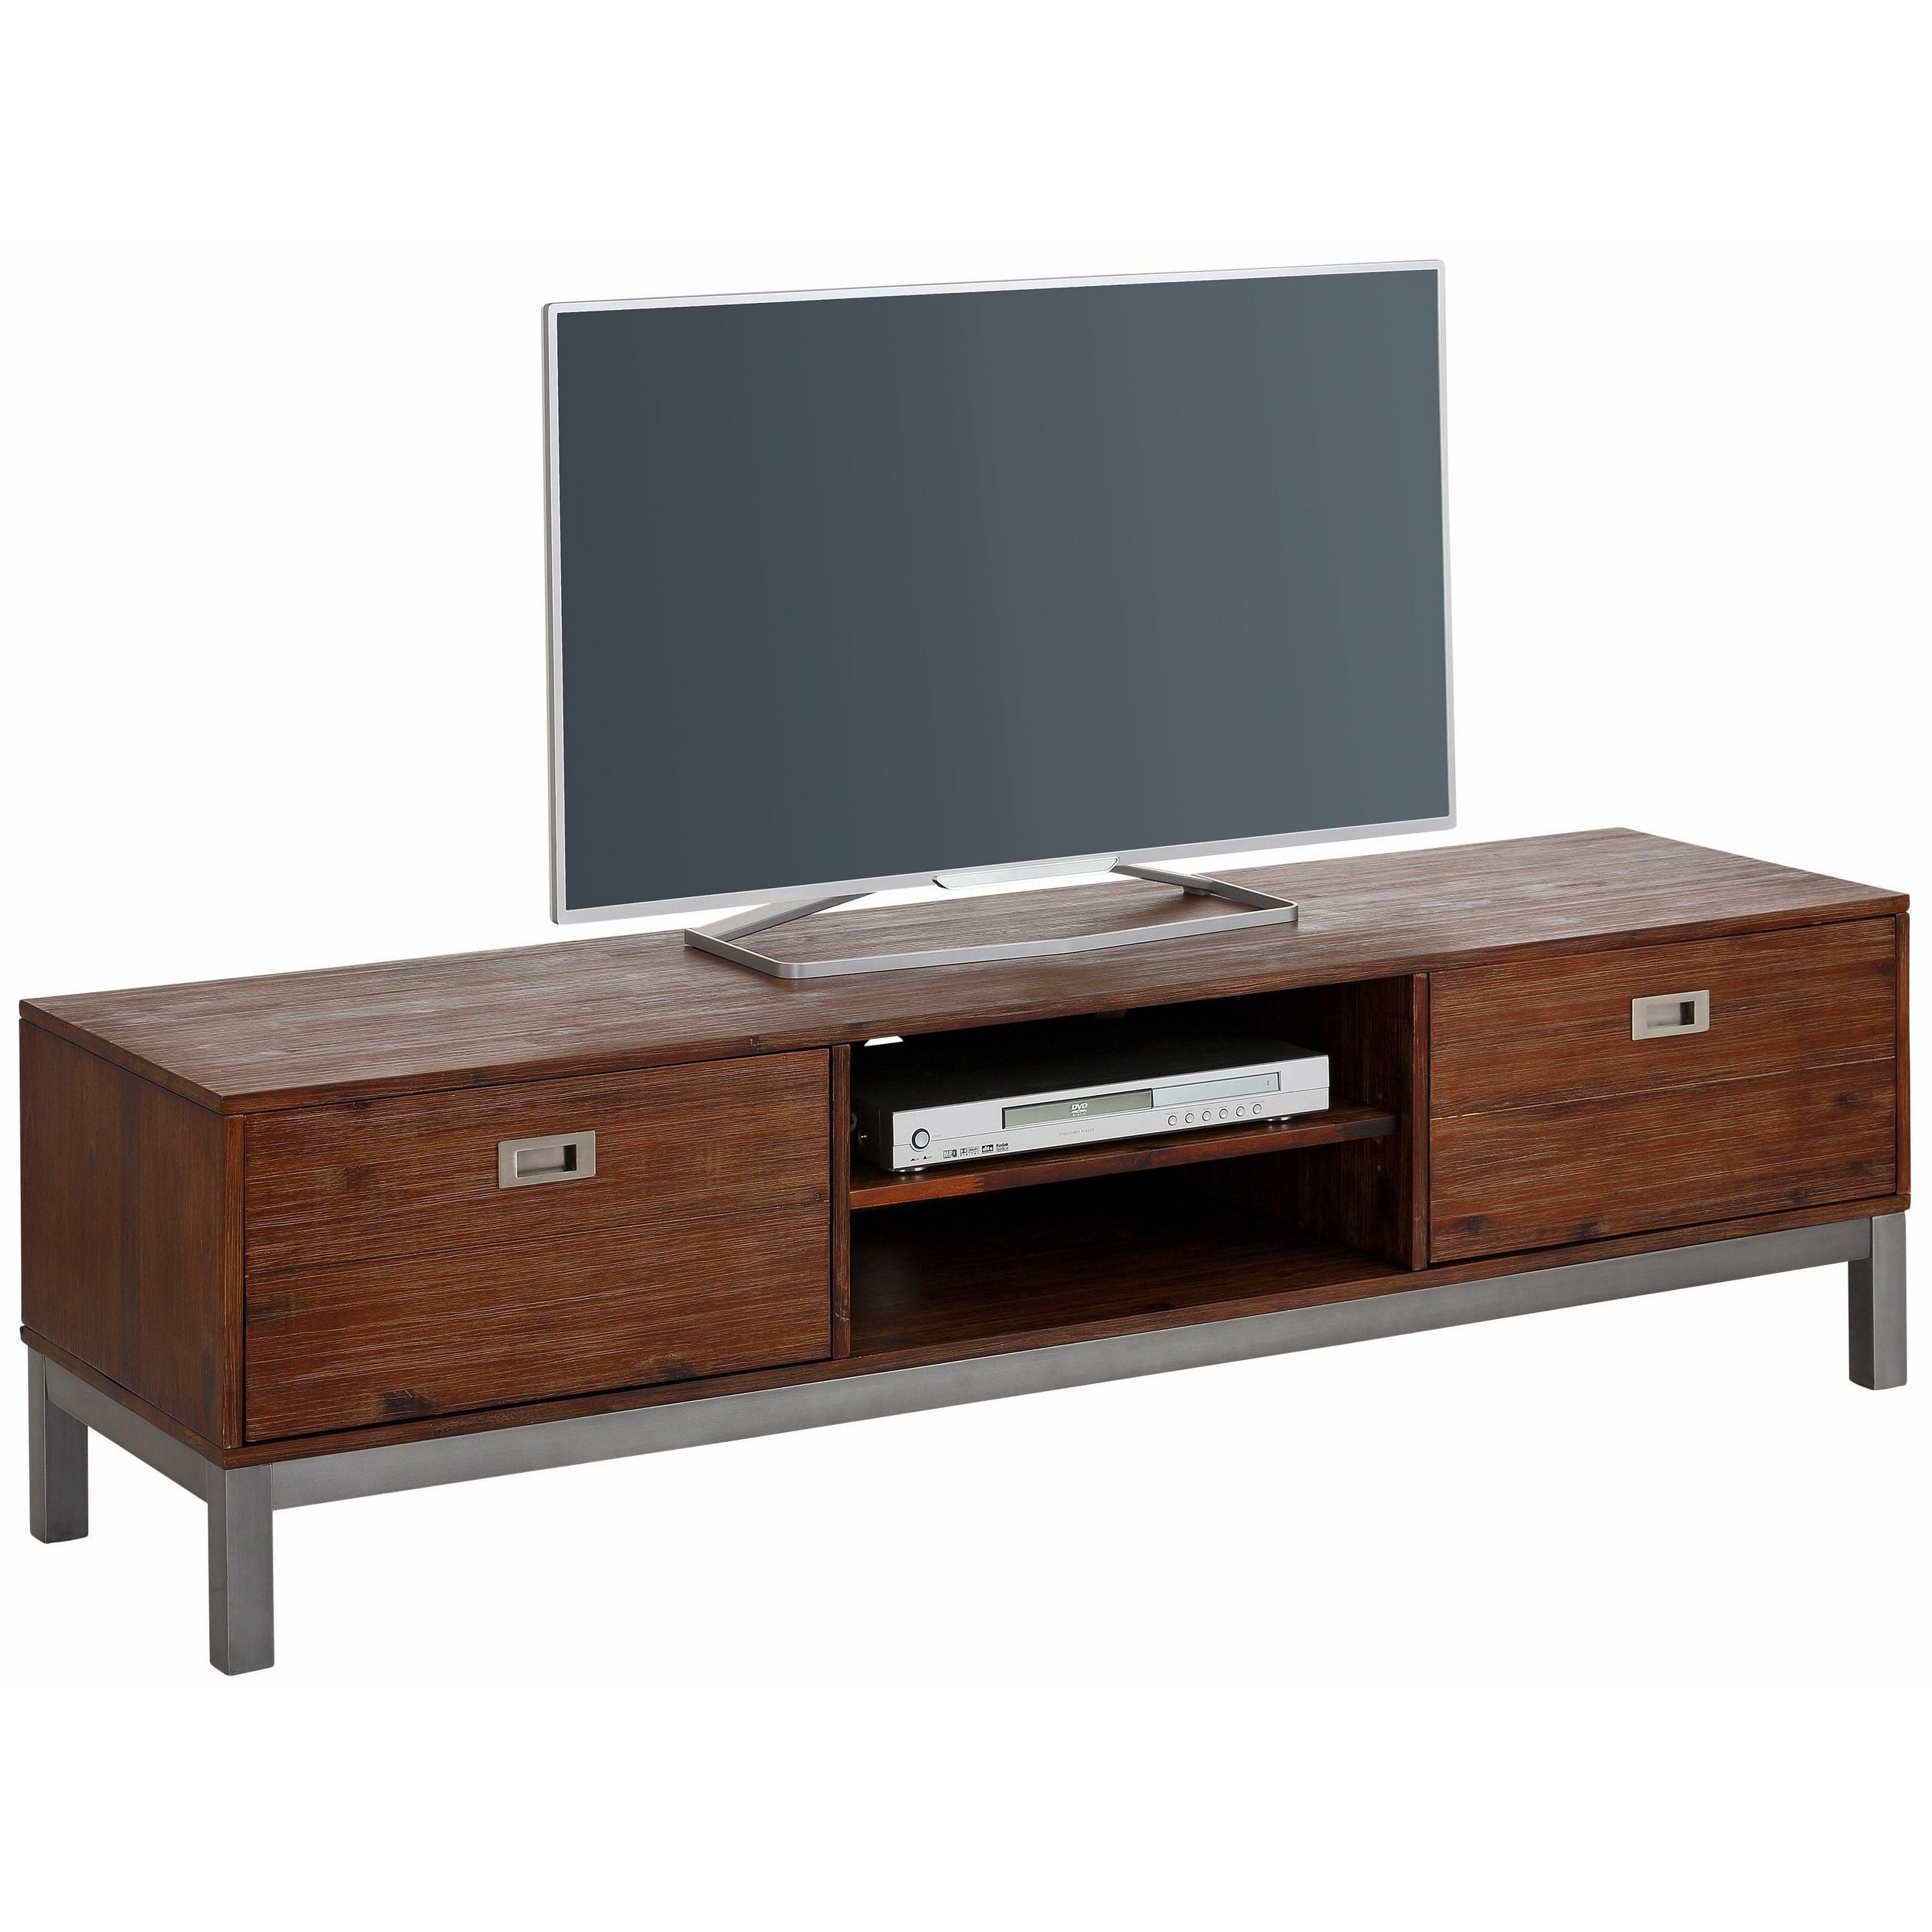 Tv Lowboard Industriedesign Congo Acacia Wood And Metal 2 Door Tv Lowboard Entertainment Center